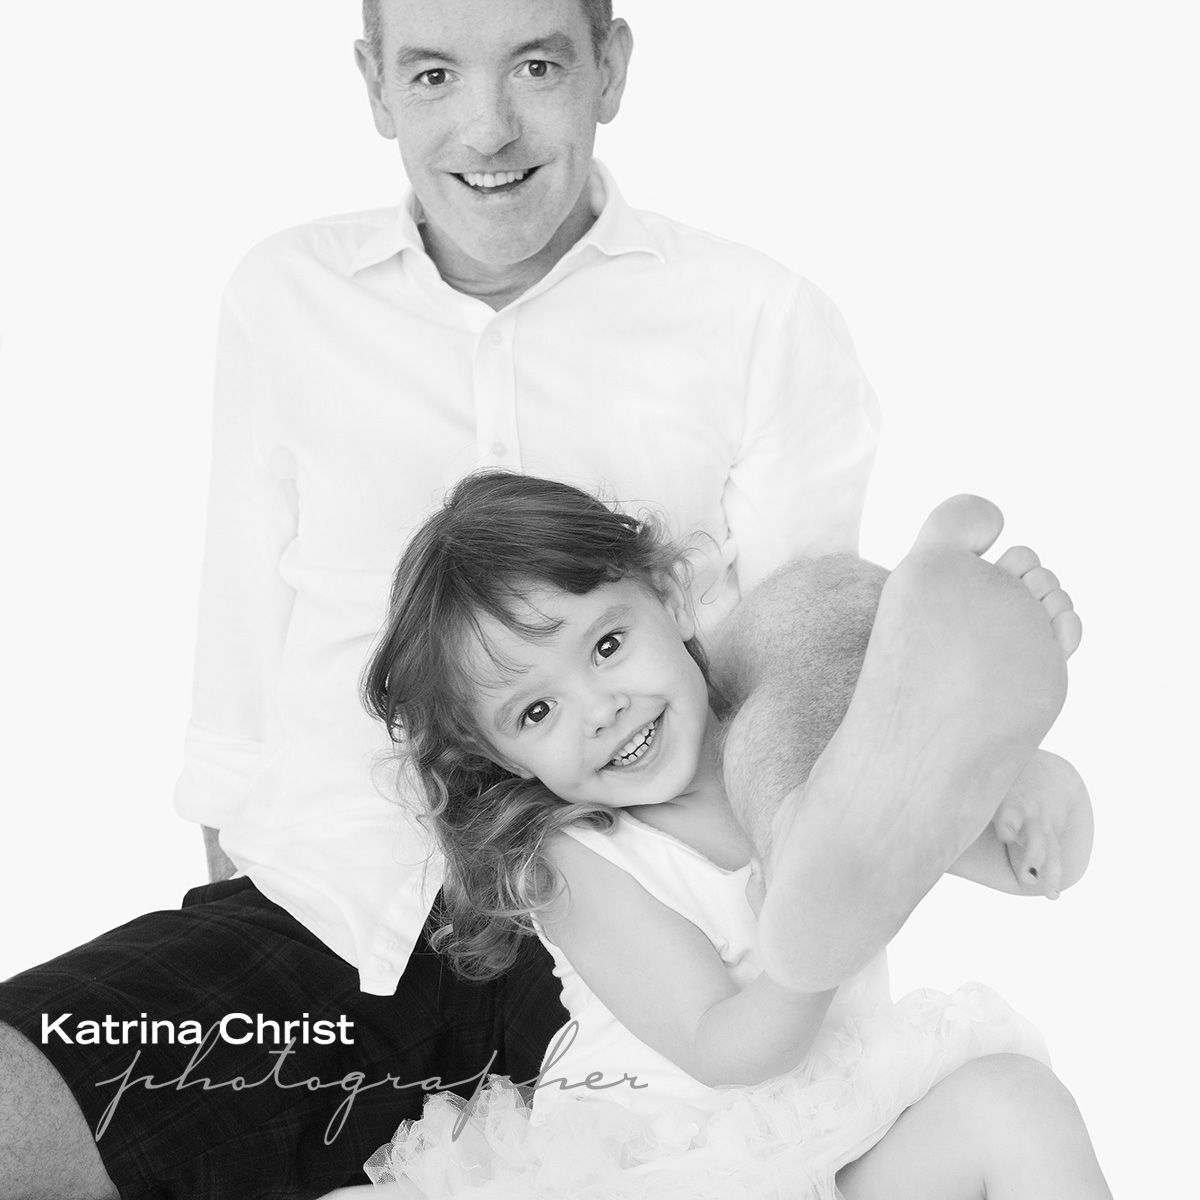 You know one of the most wonderful thing about children is when you can't tell them anything , they completely do their own thing and its AWESOME . I mean who grabs their dads foot and shows it off!  KIDS TOO  yayyyyyyyyy #ilovekids   #kids #portraits #familyportrait #myfamily #portrait  #katrinachrist #brisbane #australia #master #photographer